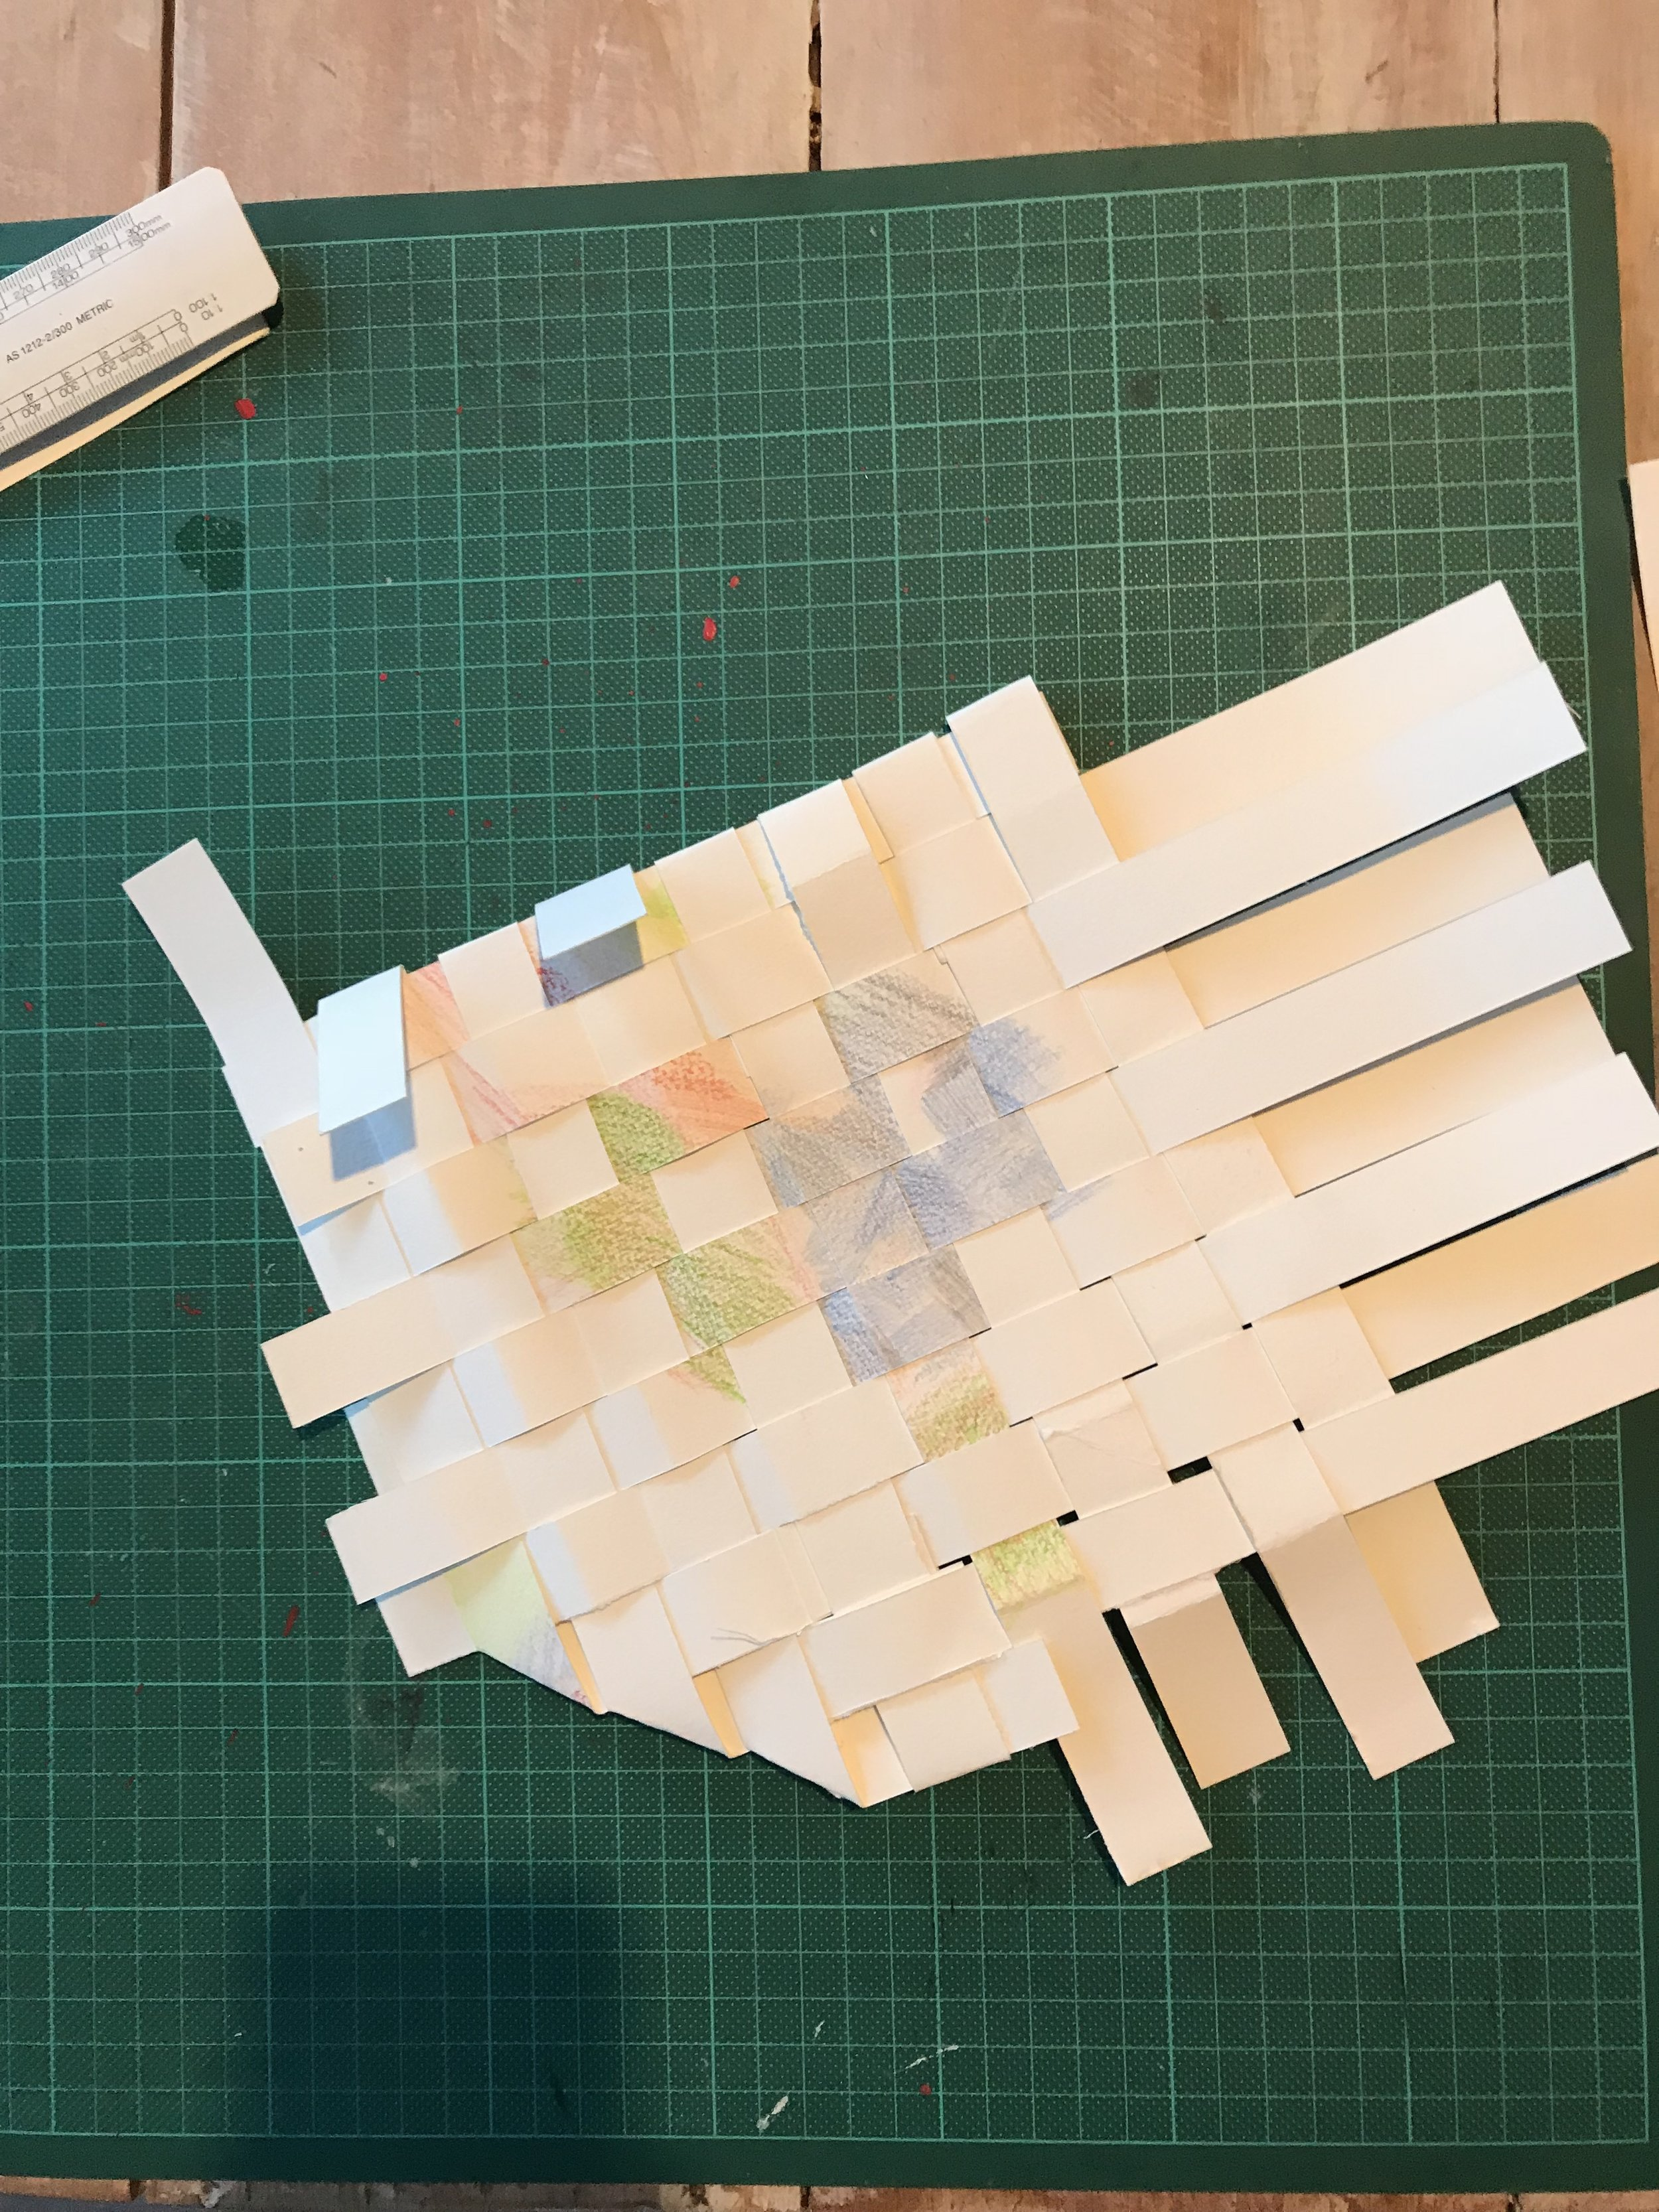 Experimenting with paper creating banig